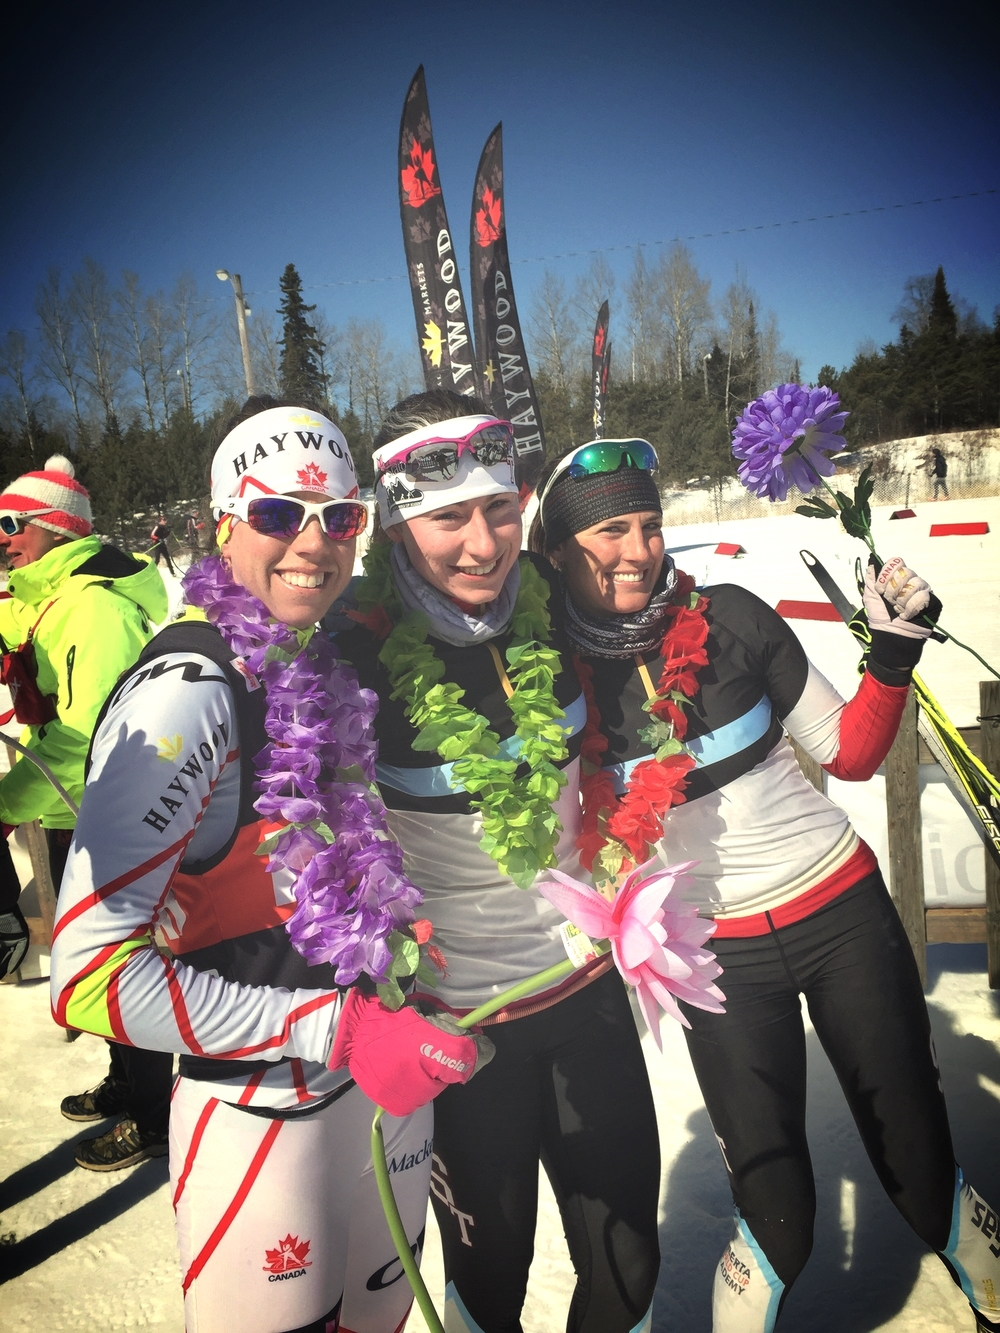 Congratulations Peri, Alysson and Brittany! A solid 30km of racing to finish off their careers. A lot less pretty faces will be on the ski trails! All the best in your next chapters. Xo